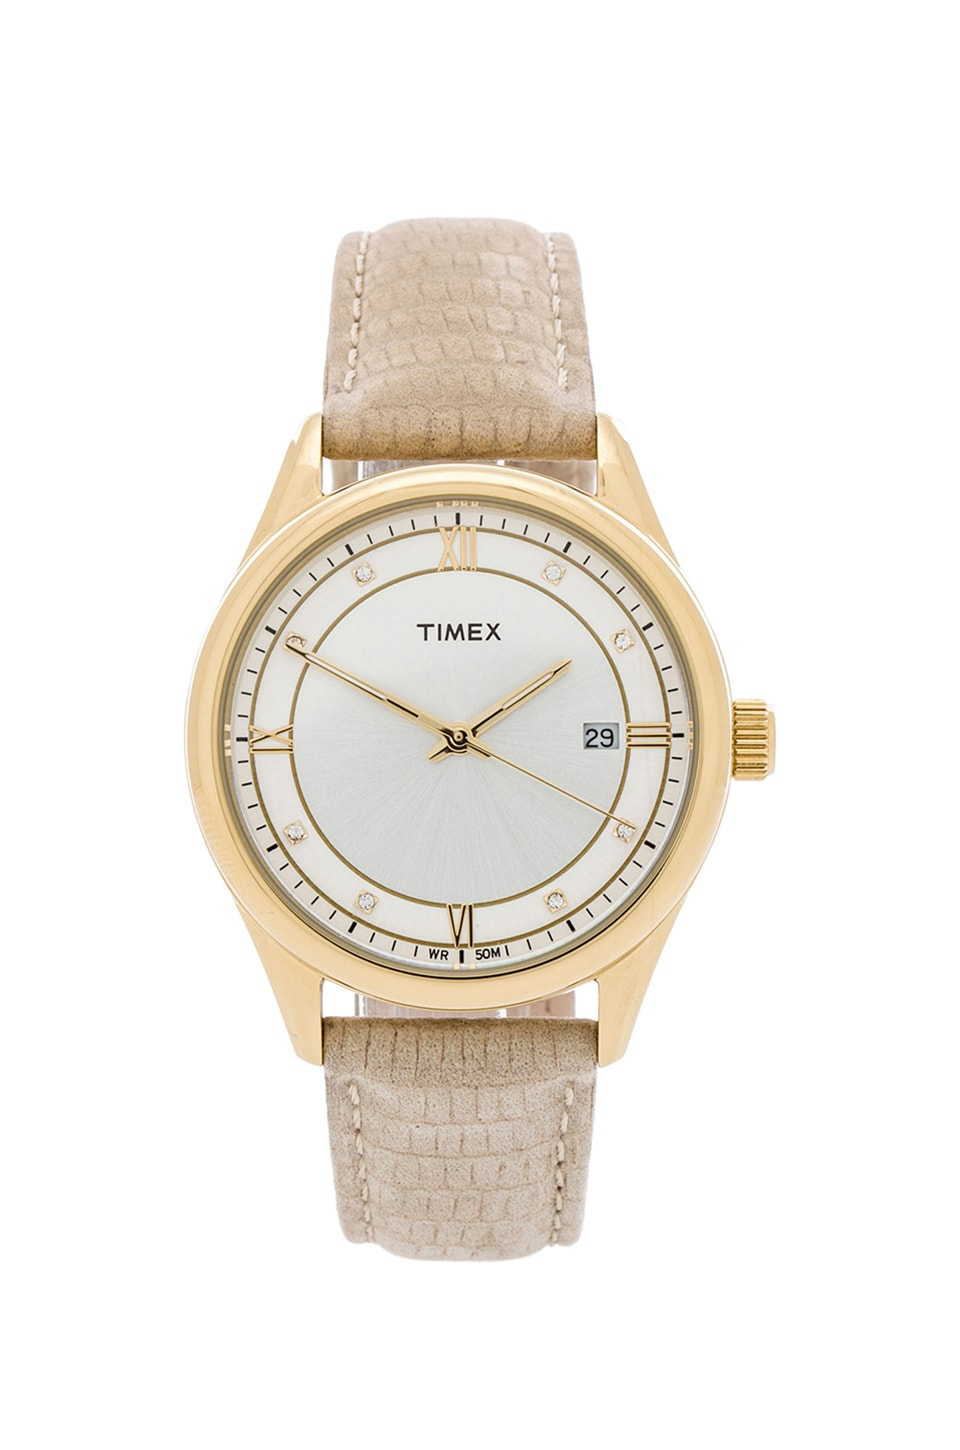 Timex Casual Dress Watch in Yellow Gold & White & Beige